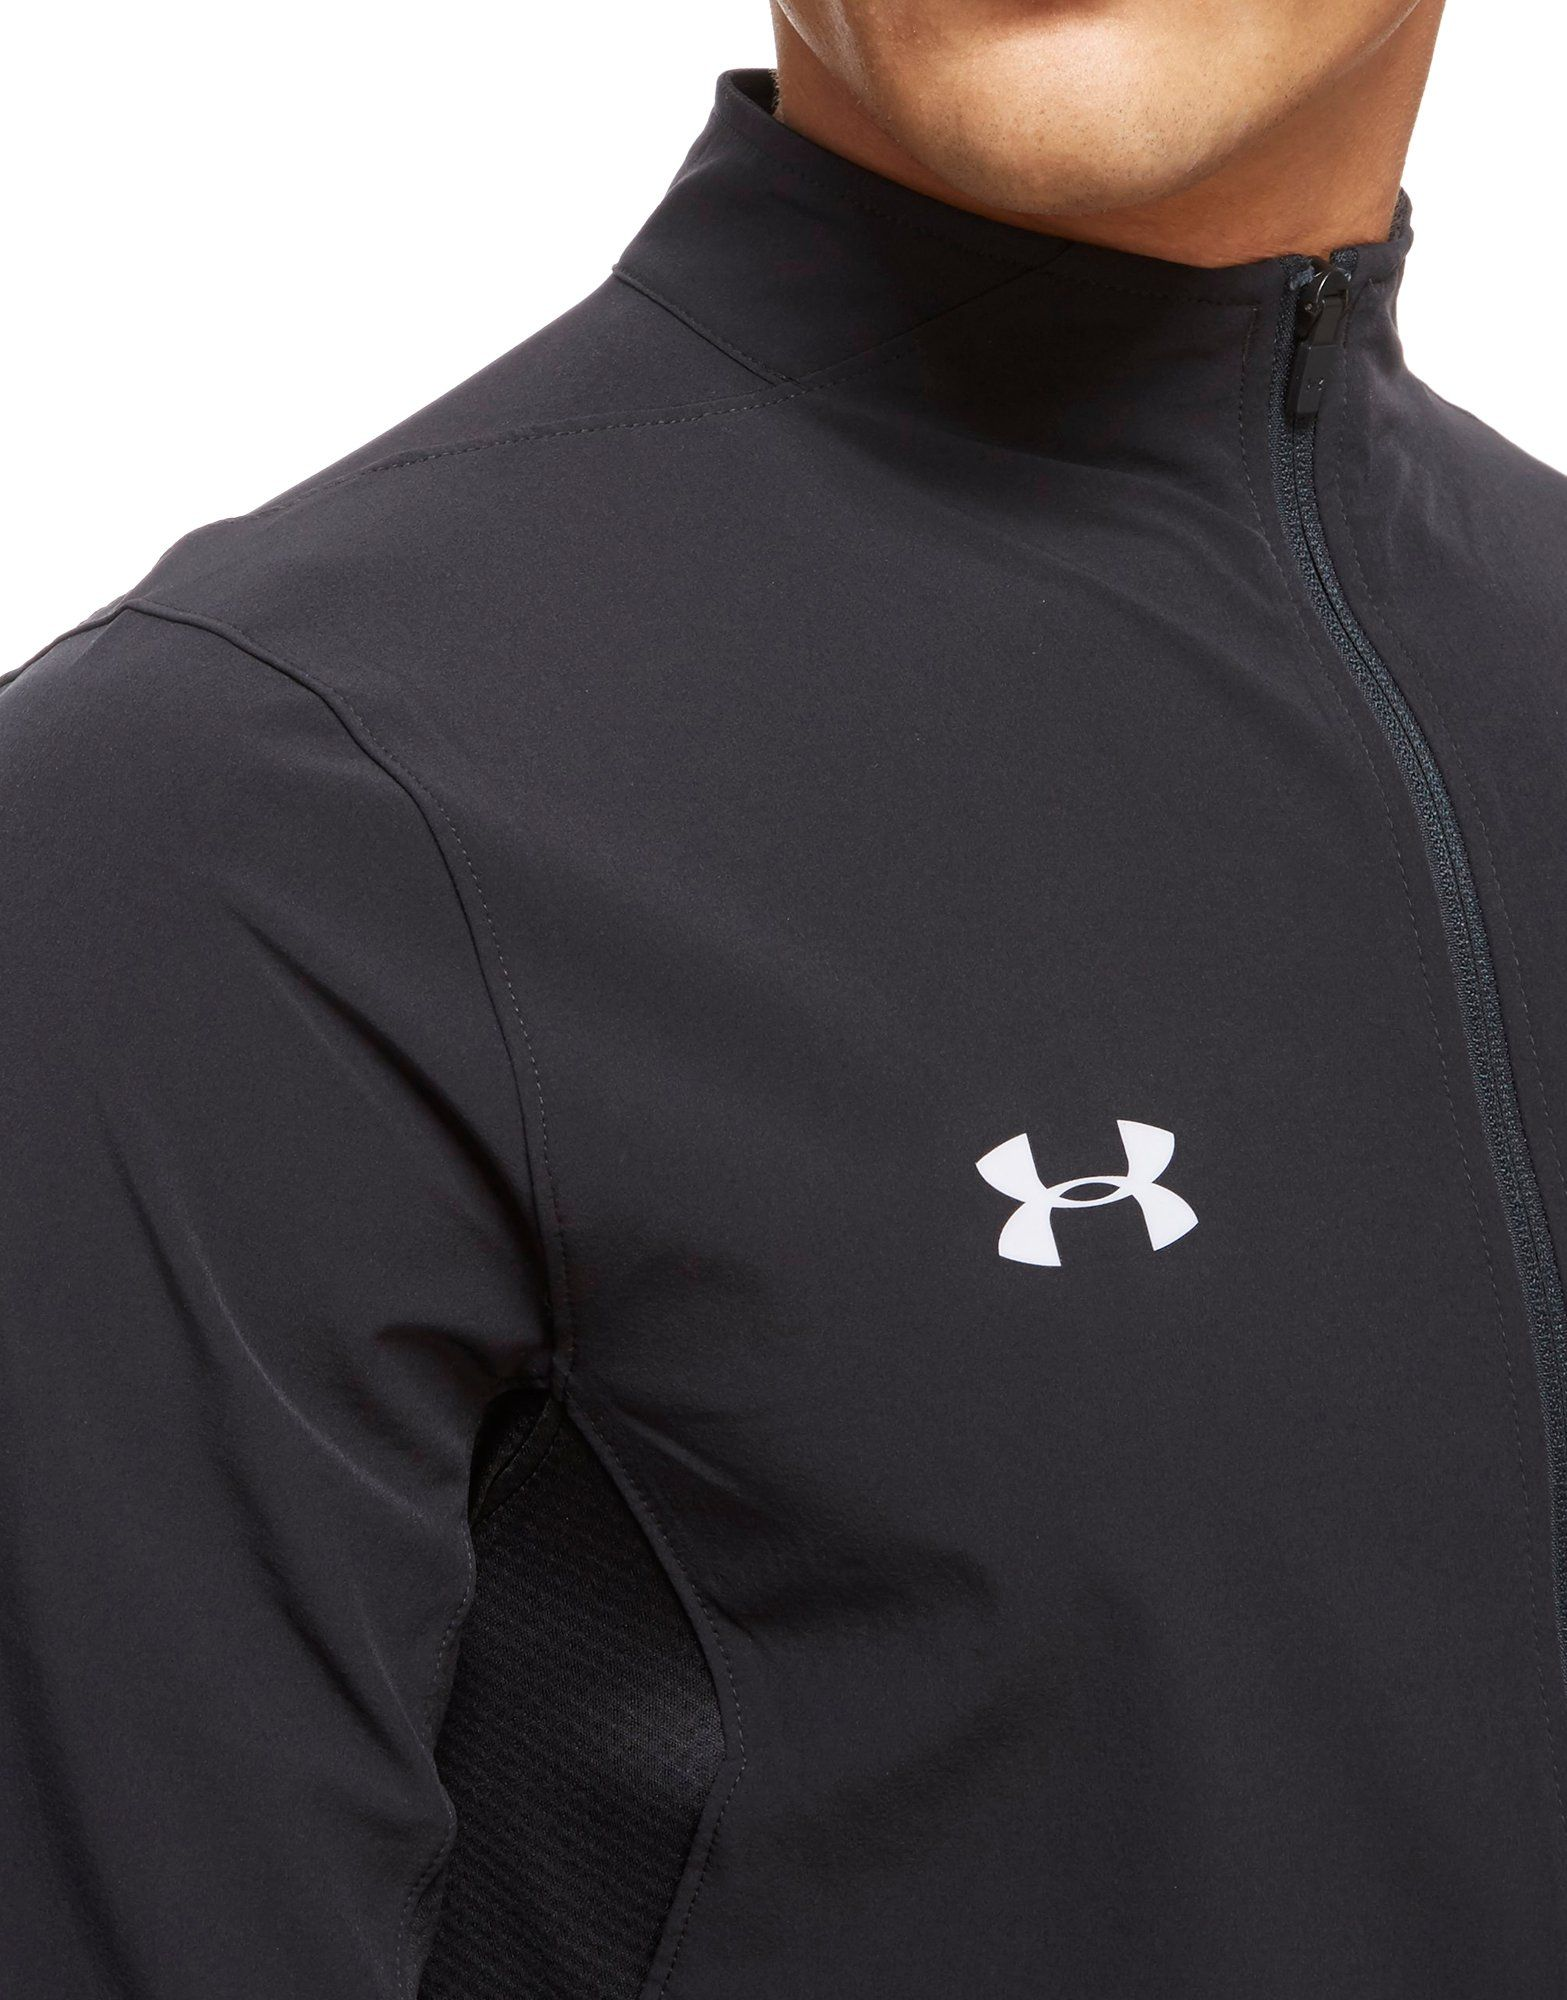 Under Armour Challenger Woven Suit